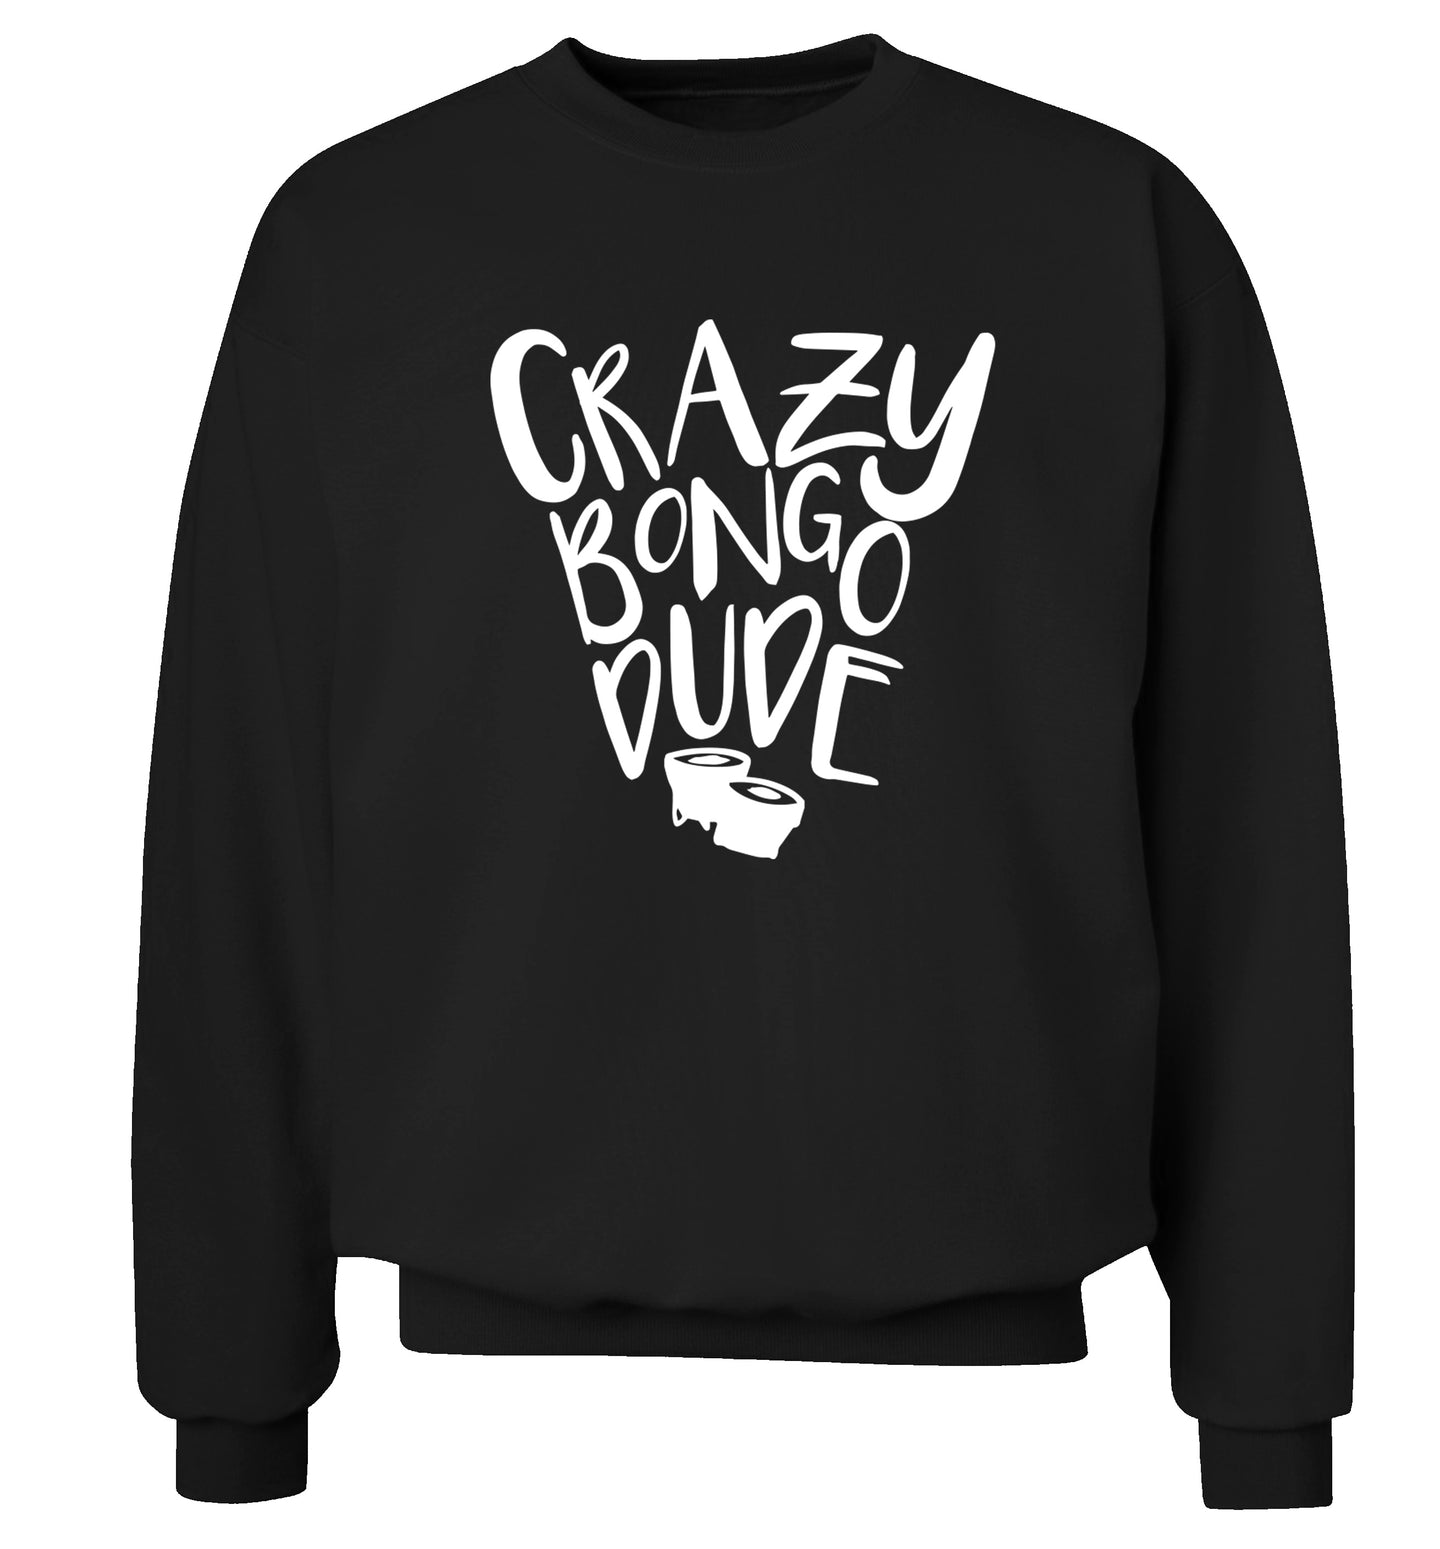 Crazy bongo dude Adult's unisex black Sweater 2XL